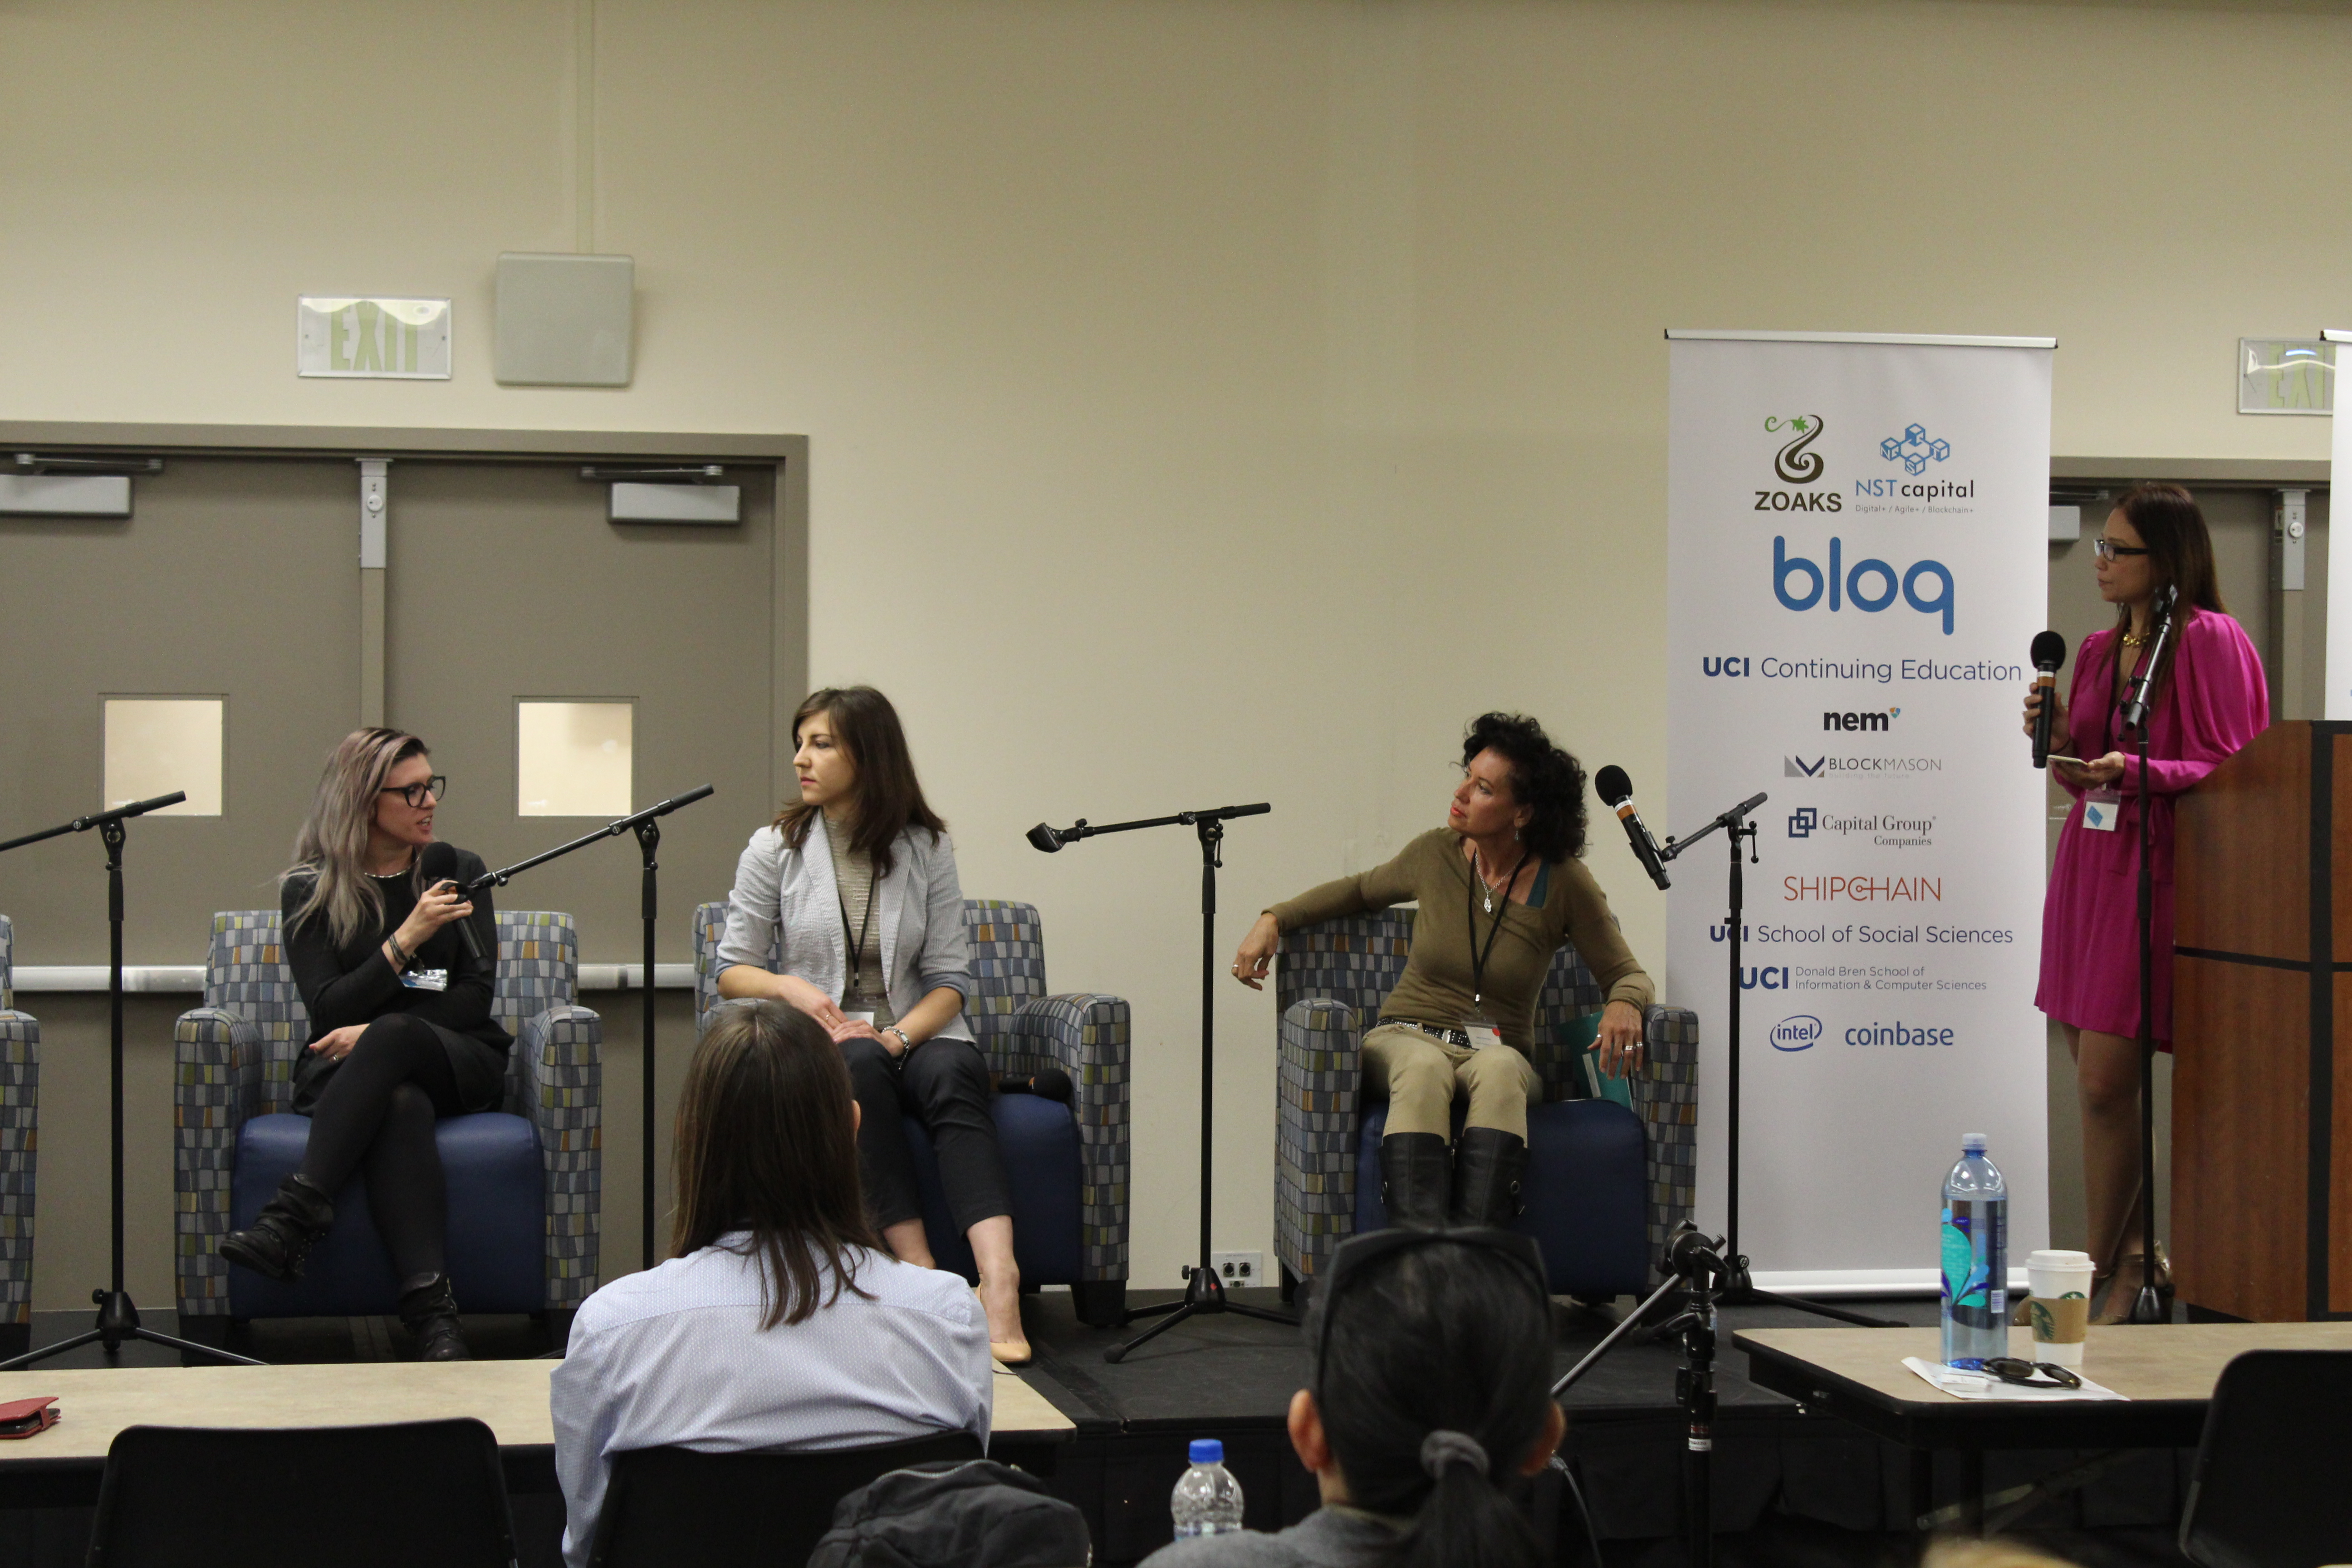 2018 Women in Blockchain Summit Highlights the Need for Diversity in a Growing Tech Industry